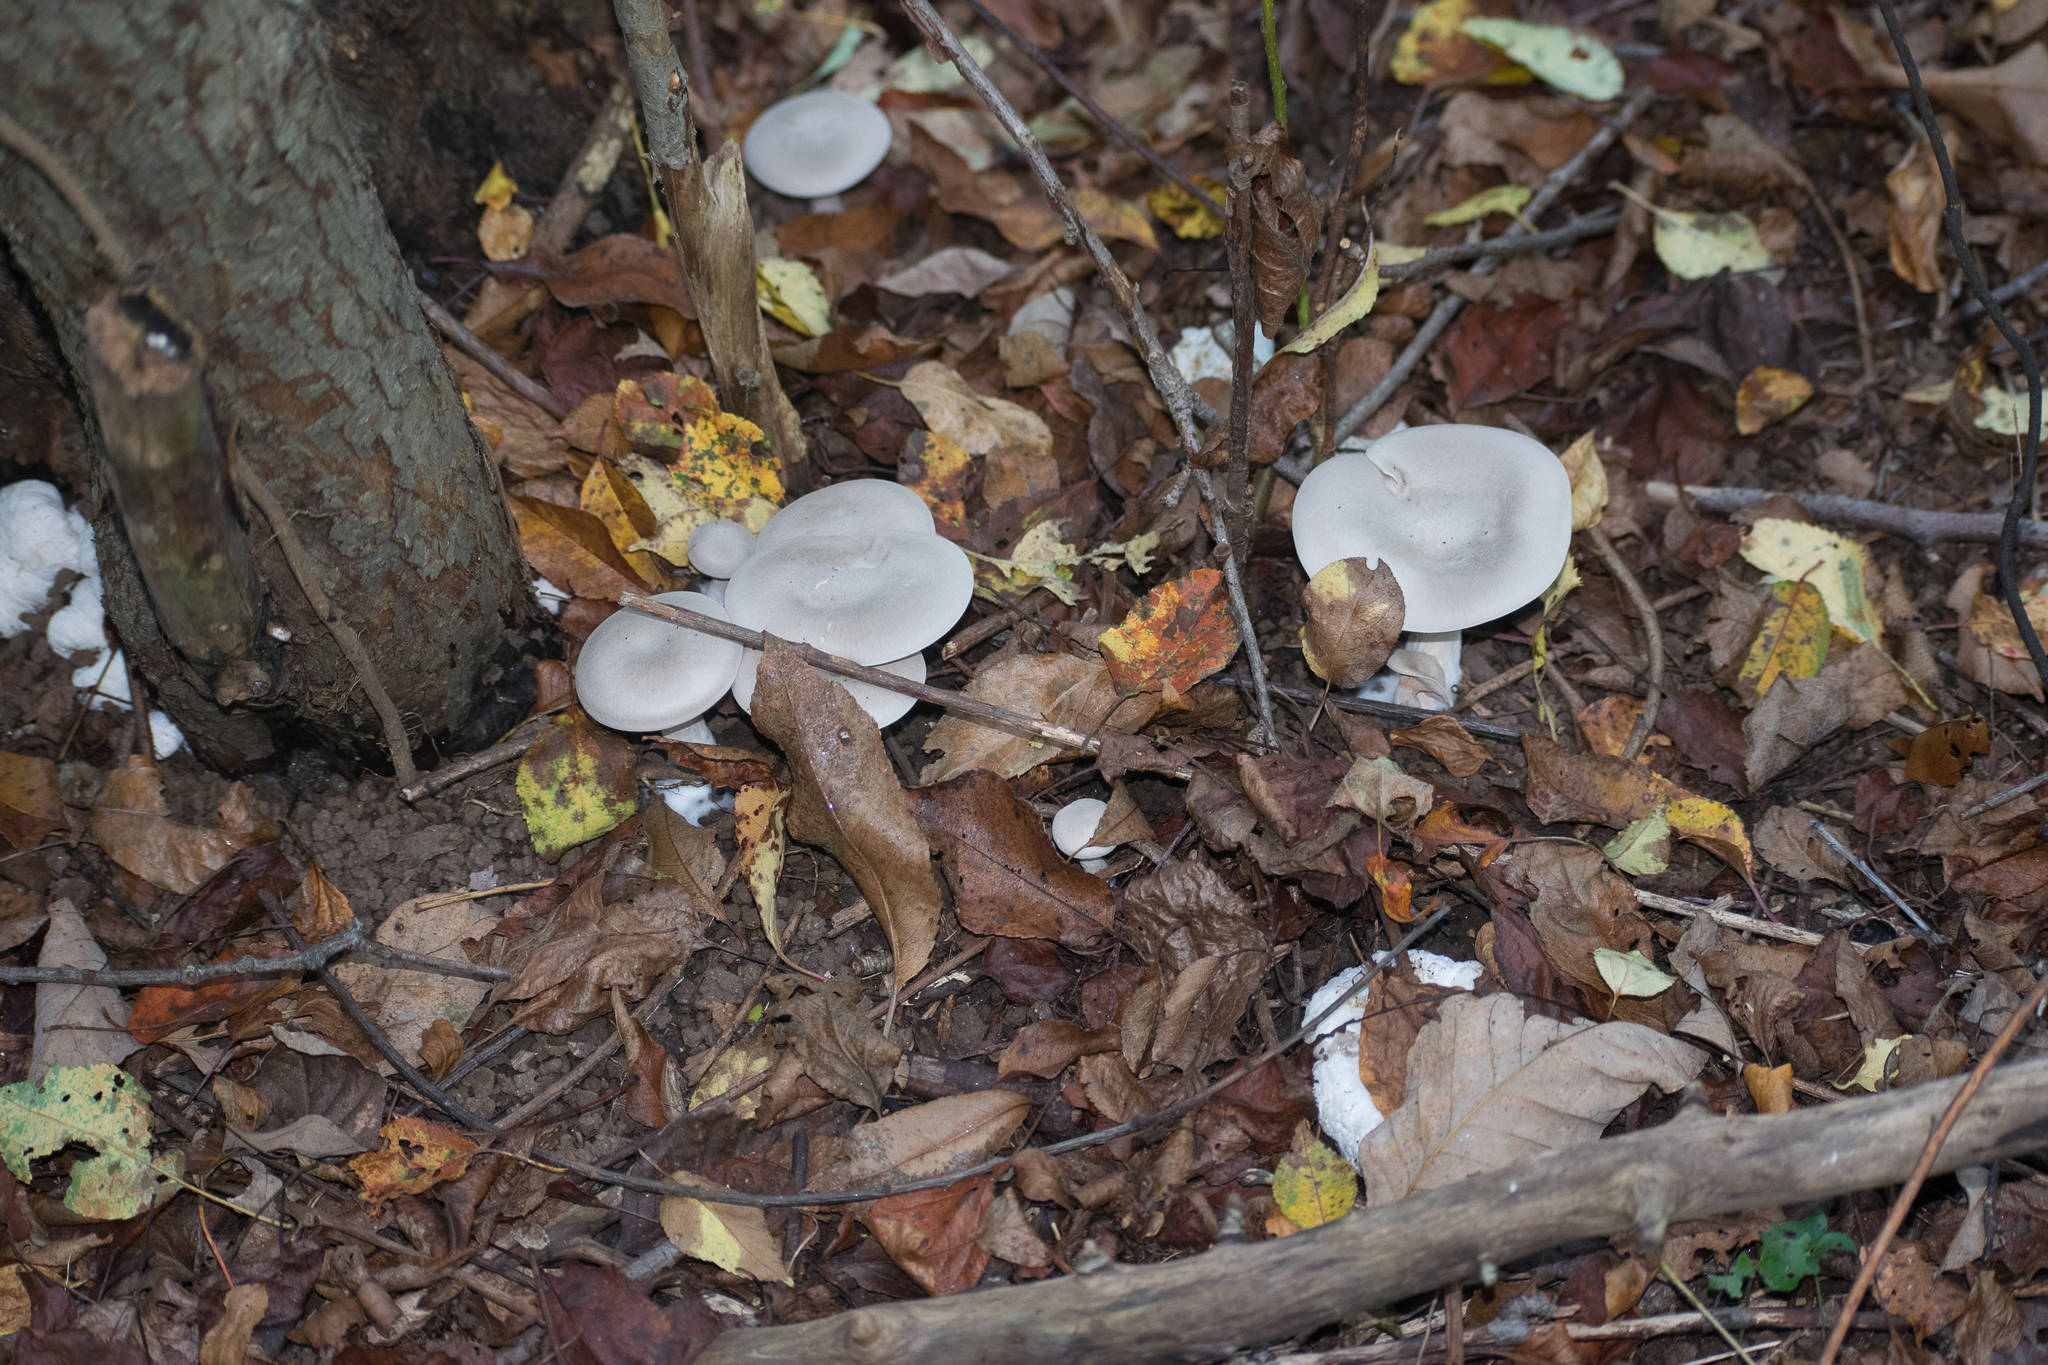 Post Your Hunting Picture of The Day (No ID Requests) - Mushroom